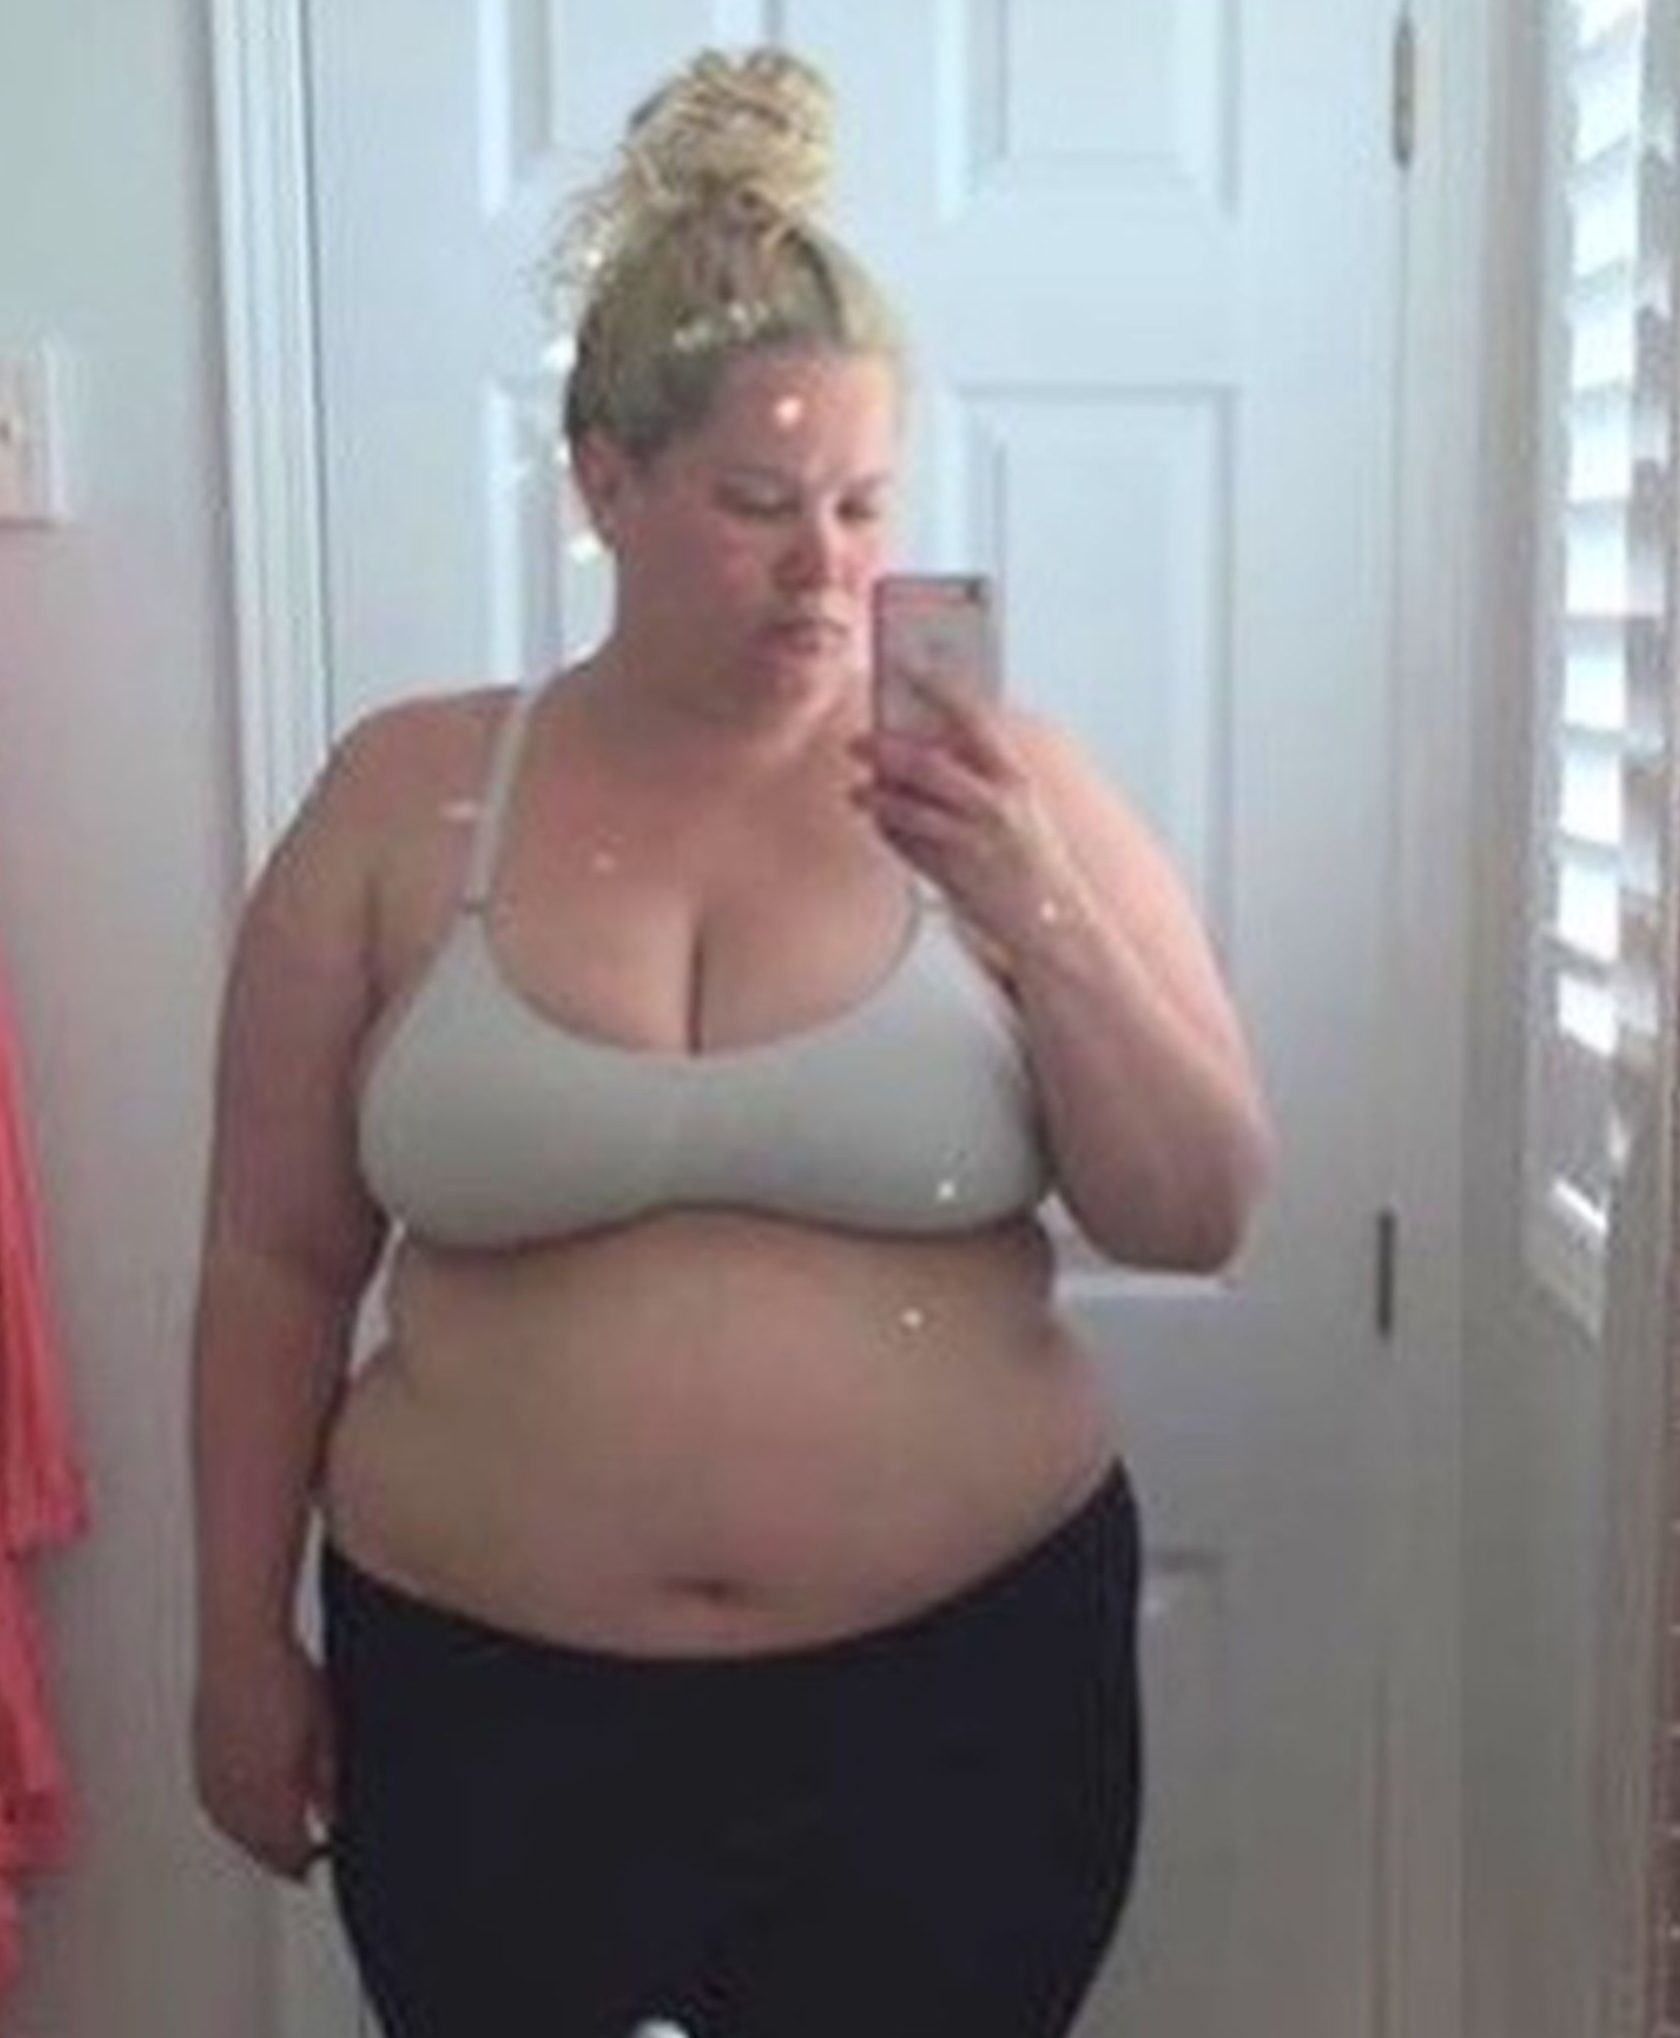 At her biggest, Kelsey was a size 28 and tipped the scales at 20 stone